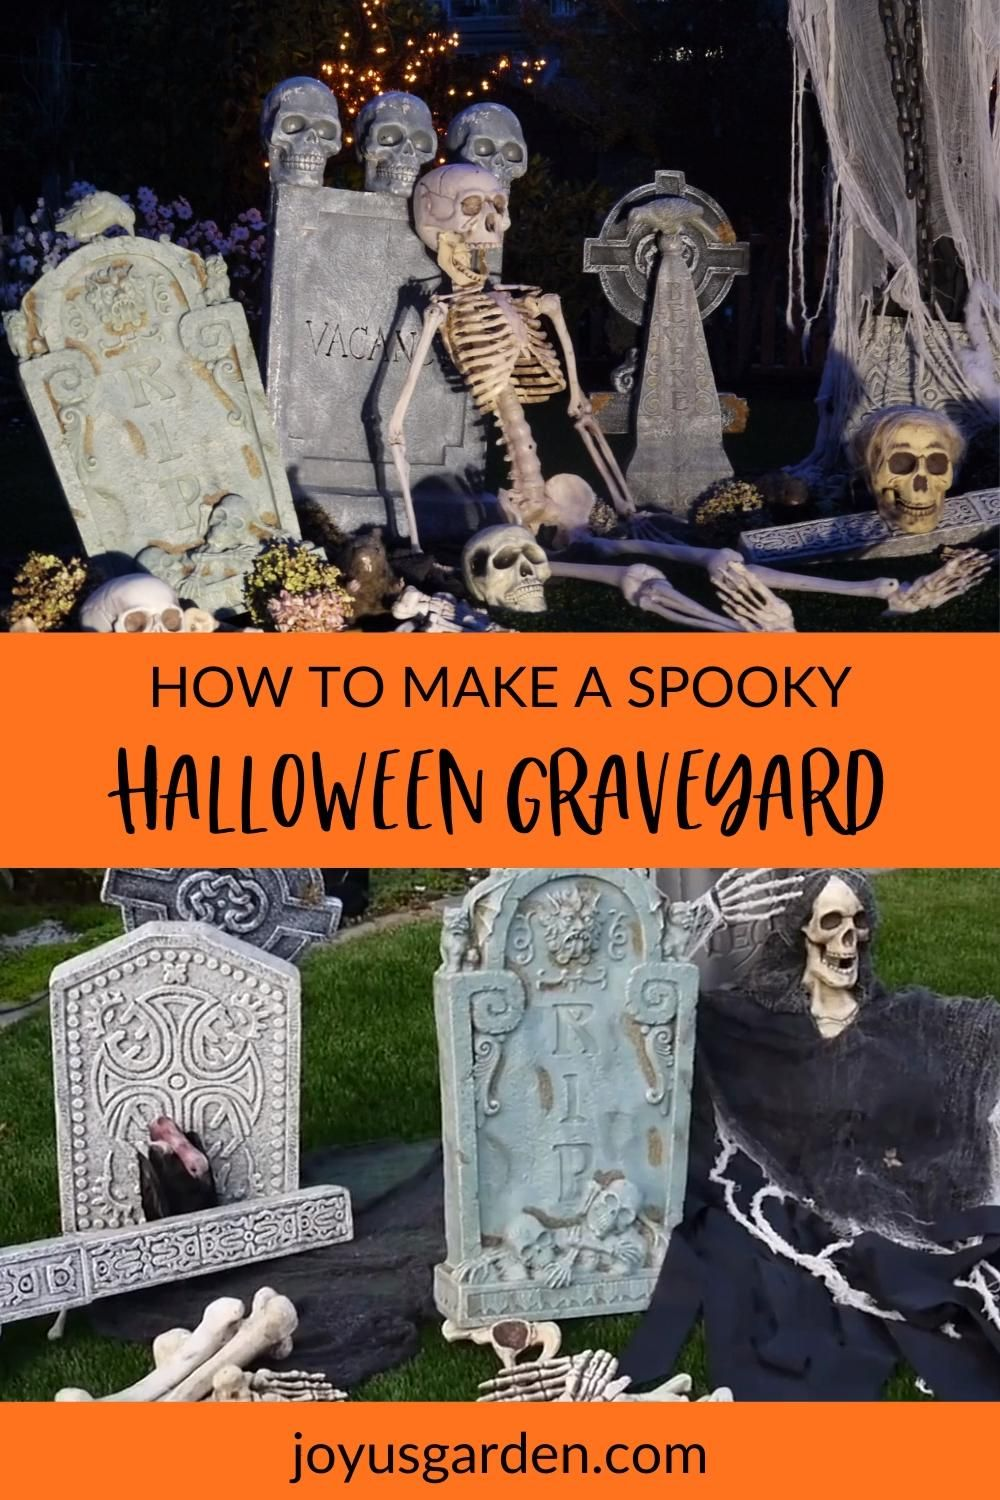 What You Need To Create A Spooky Halloween Graveya